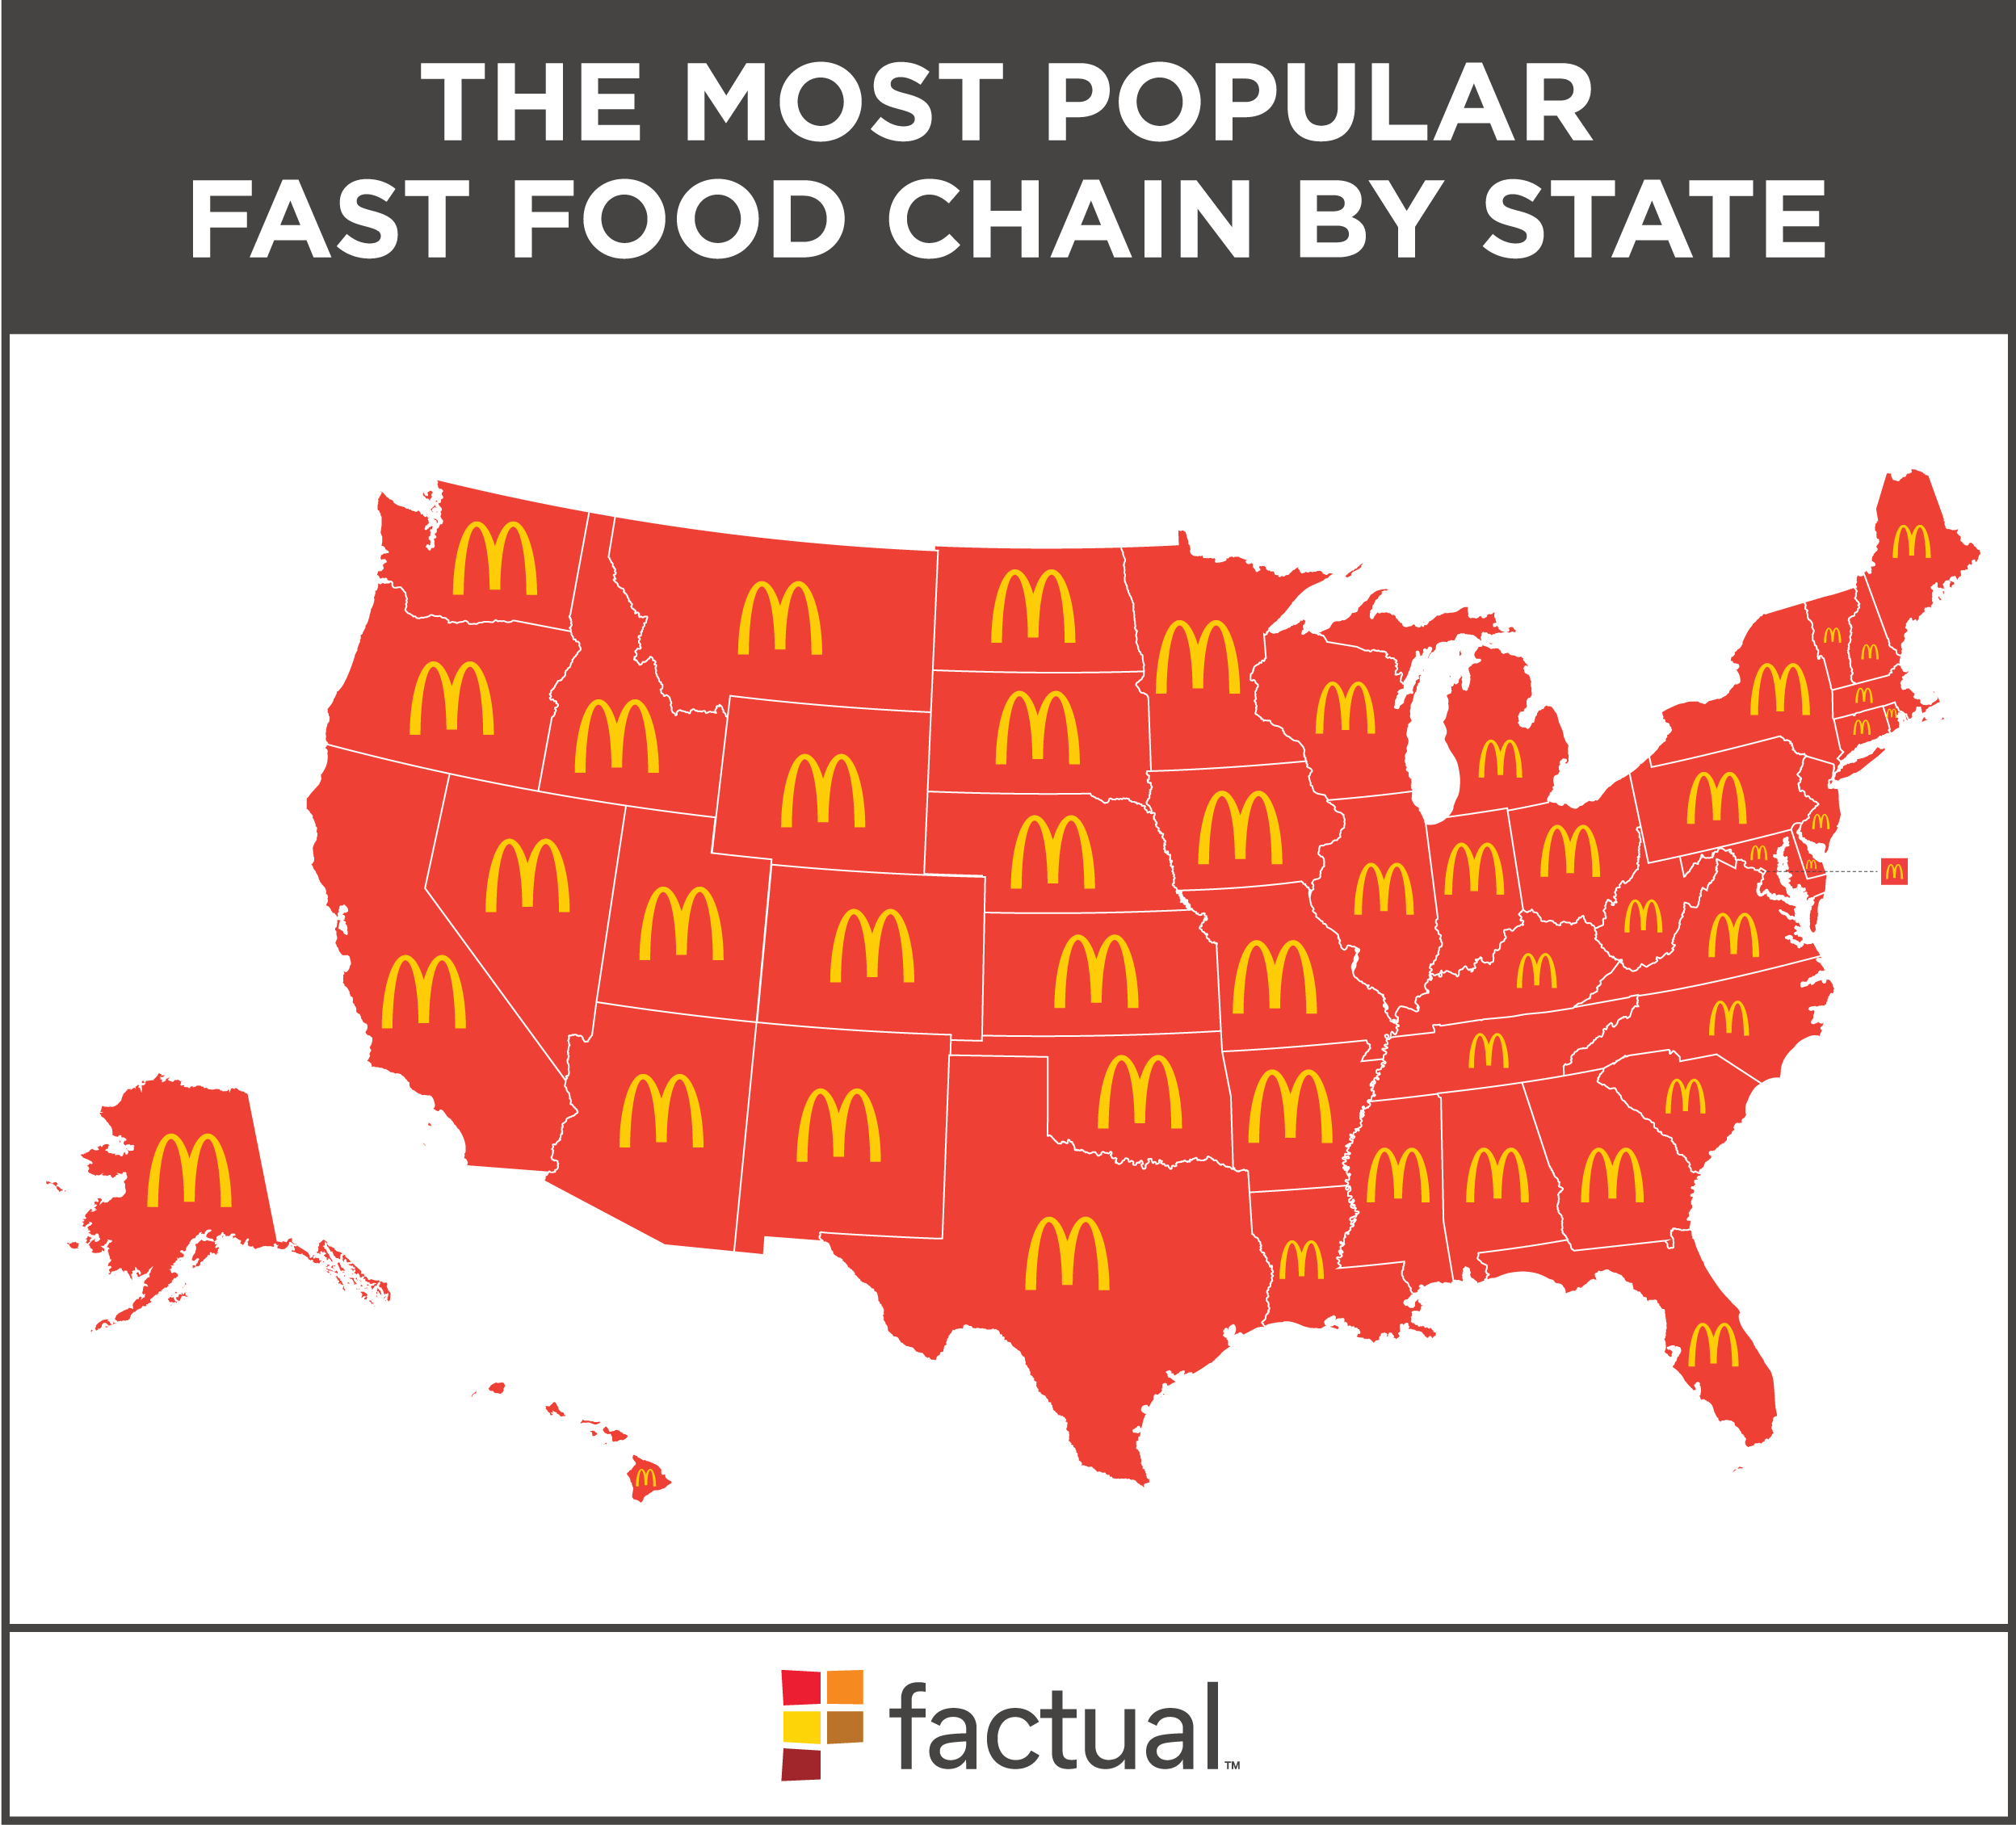 Factual | Factual Analysis: The Most Popular Fast Food